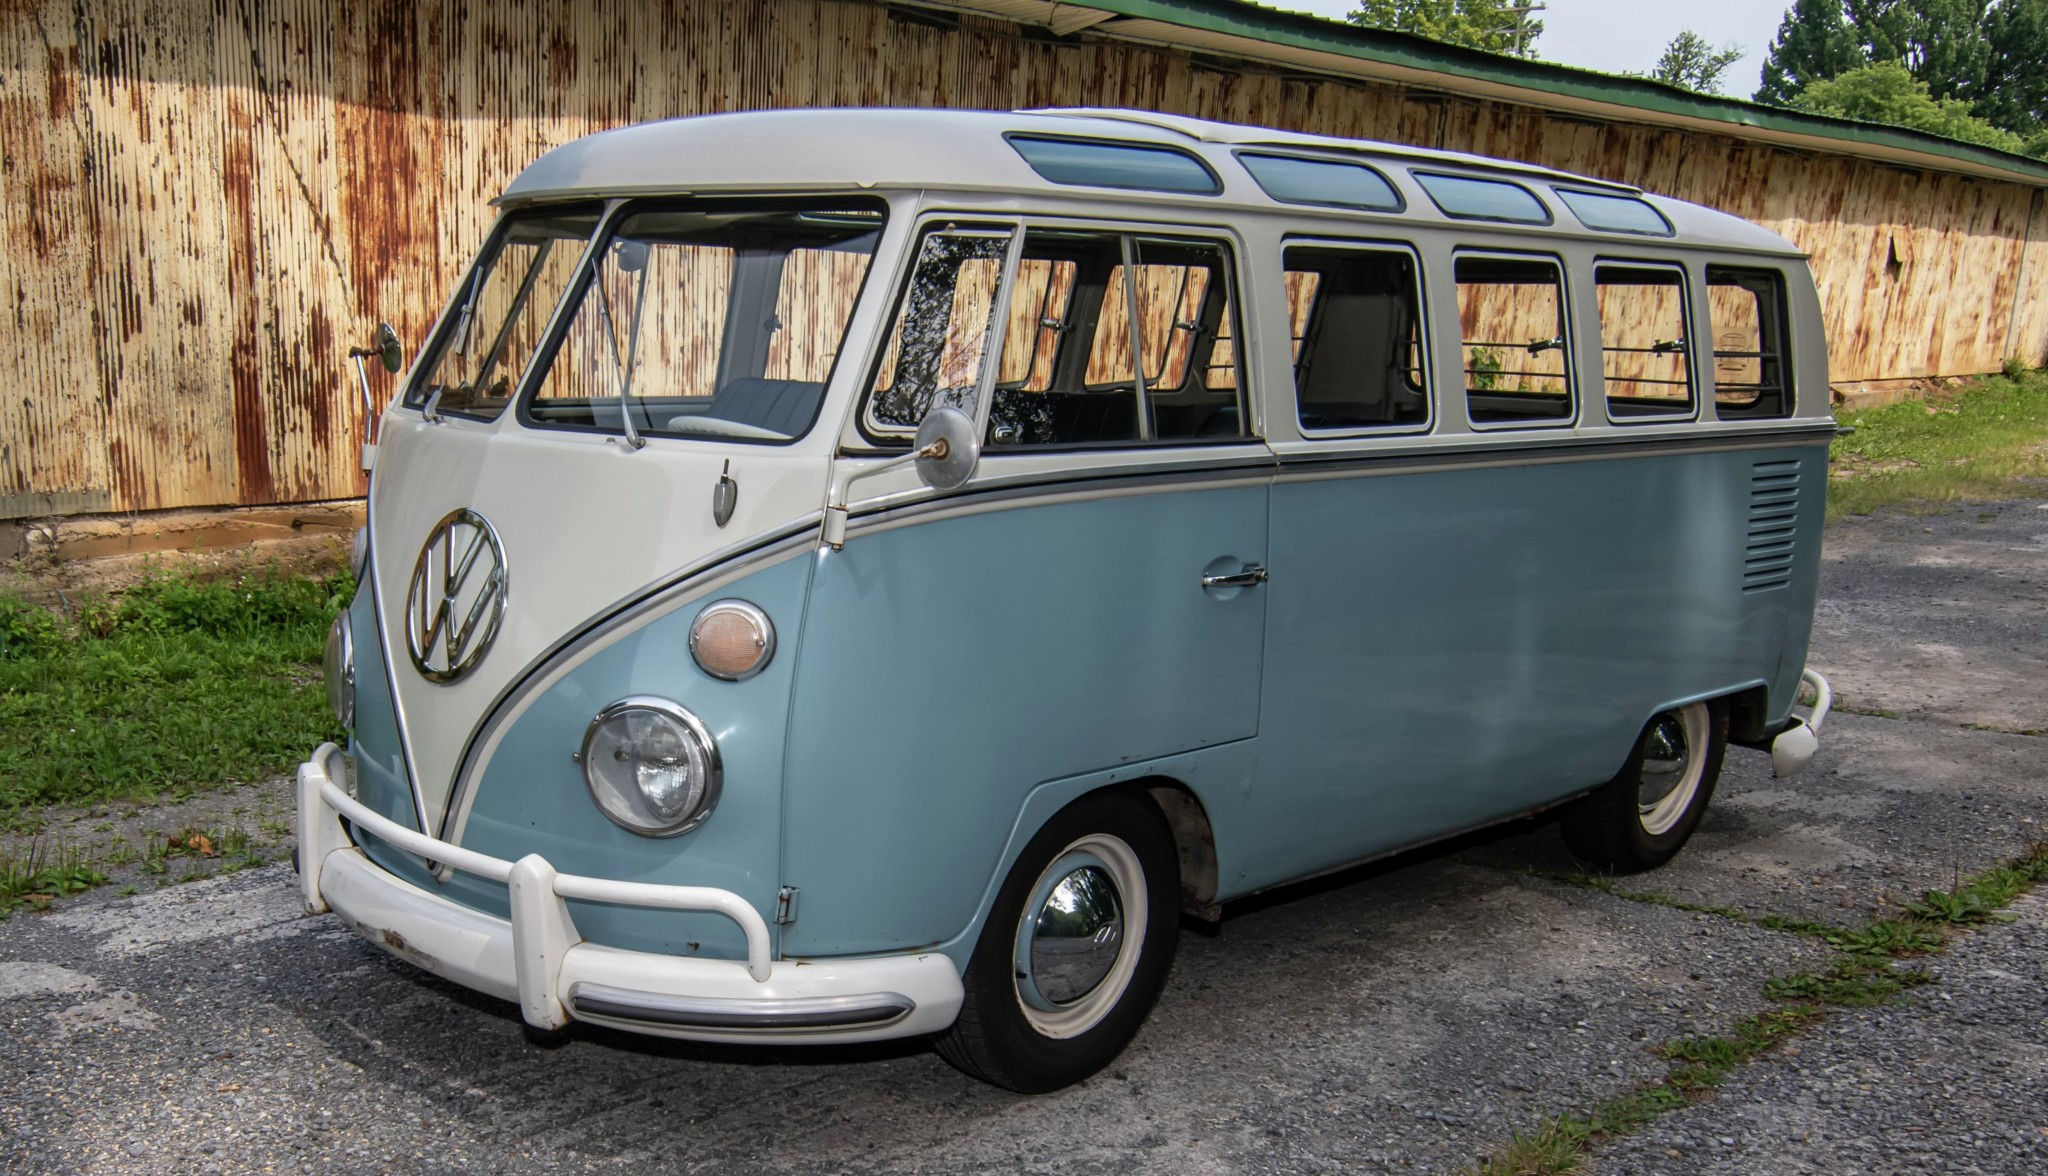 1967_volkswagen_bus_1565561281ceffc6298c0e26Bus-Full-View-4